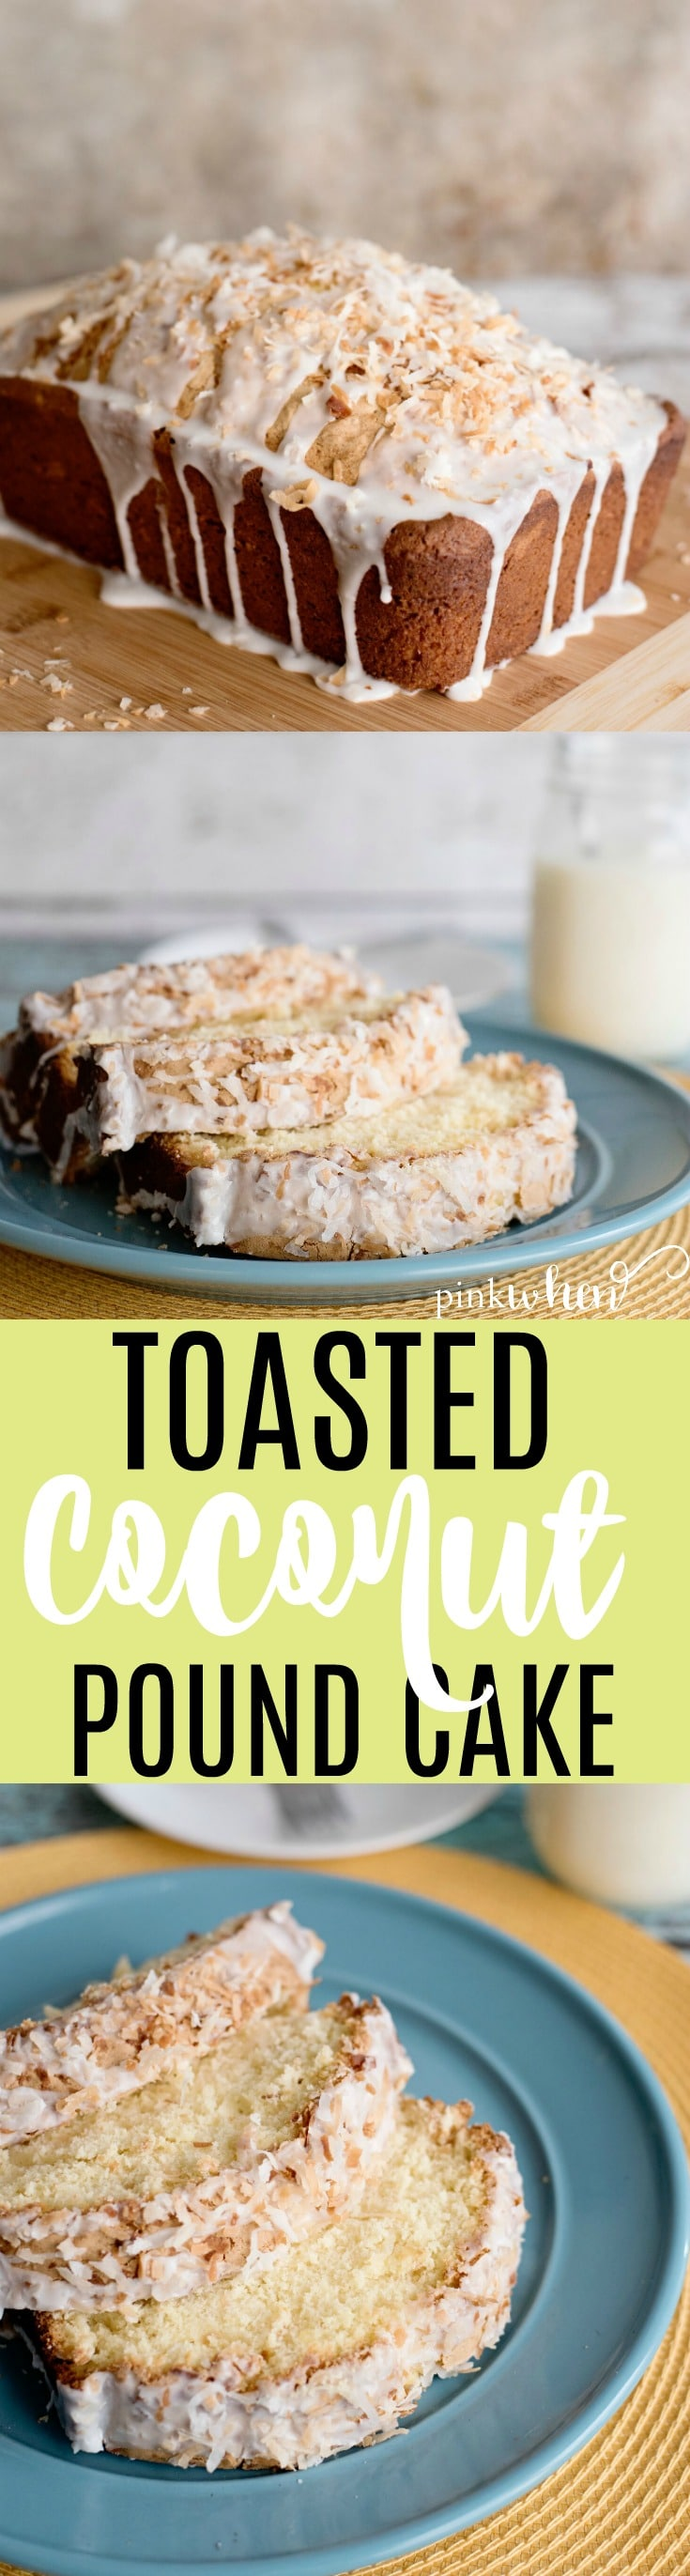 This Toasted Coconut Pound Cake Recipe is mouthwateringly delicious! #poundcakerecipe #easycakerecipe #dreamydessert